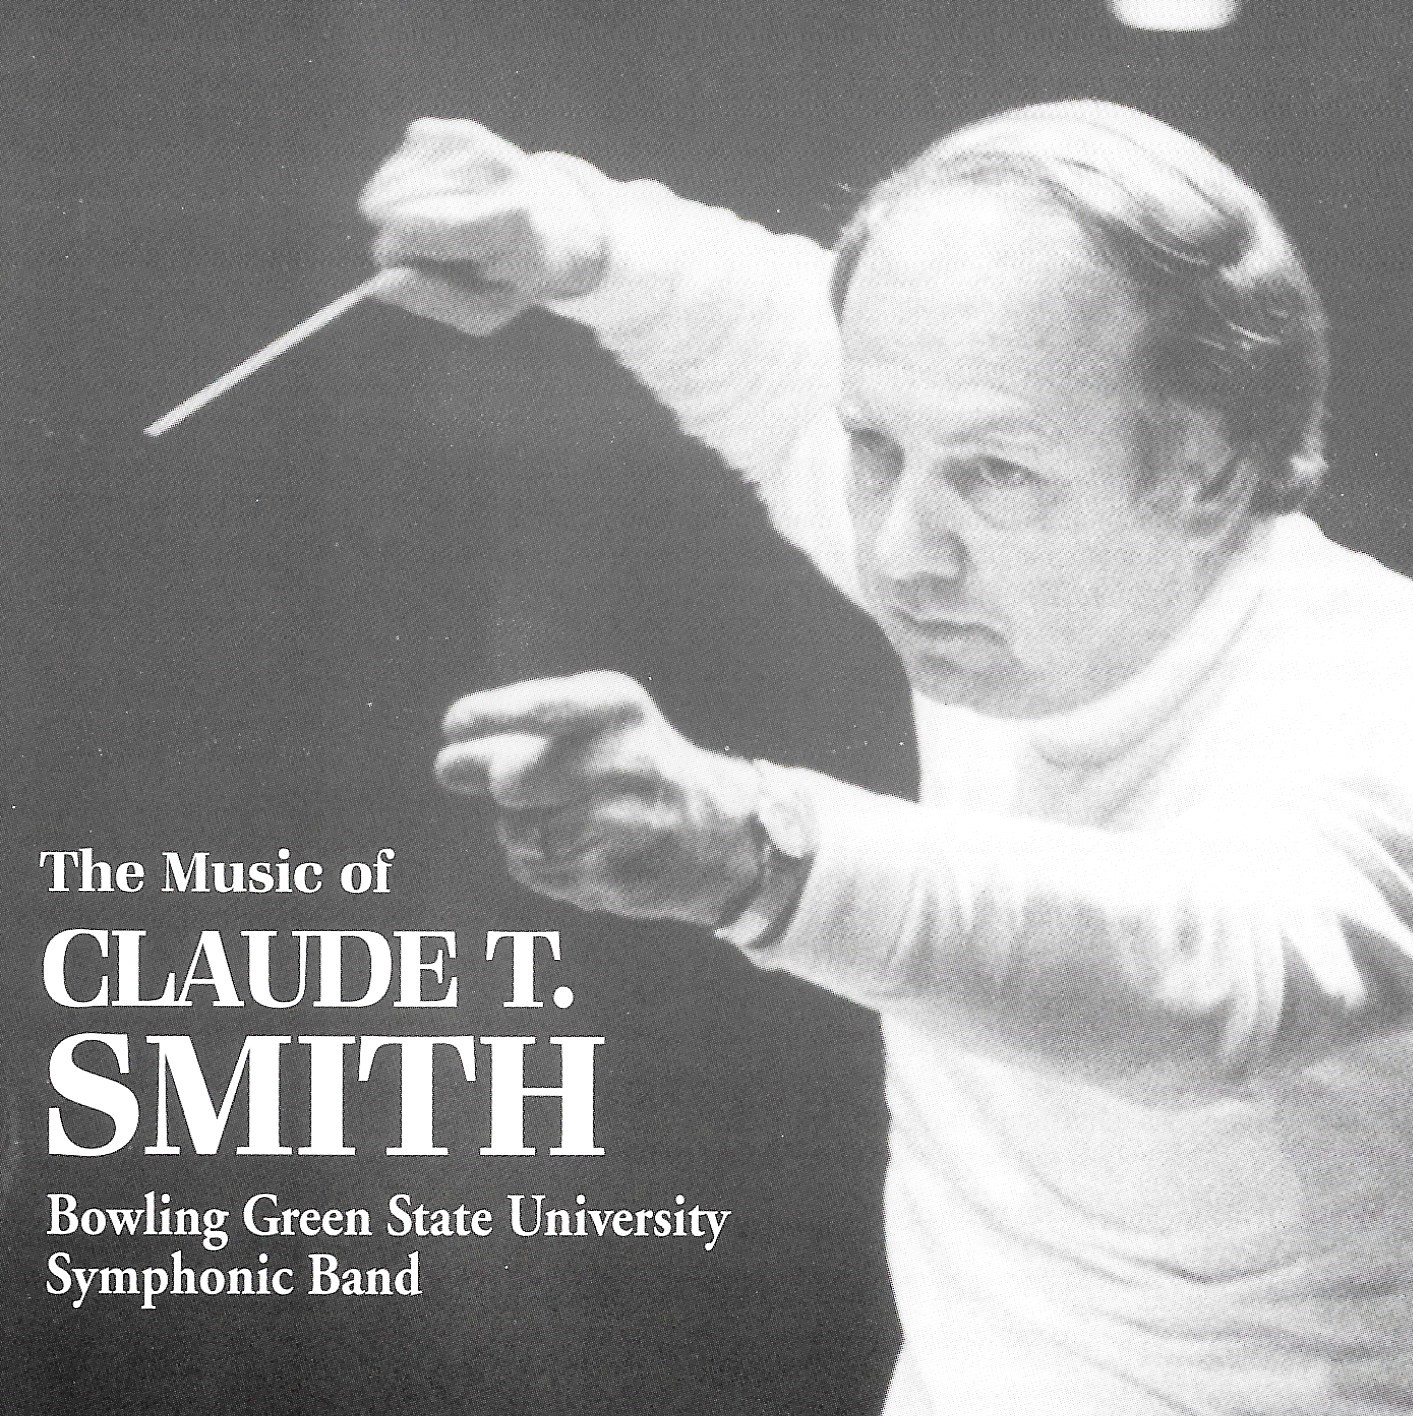 The Music of Claude T. Smith